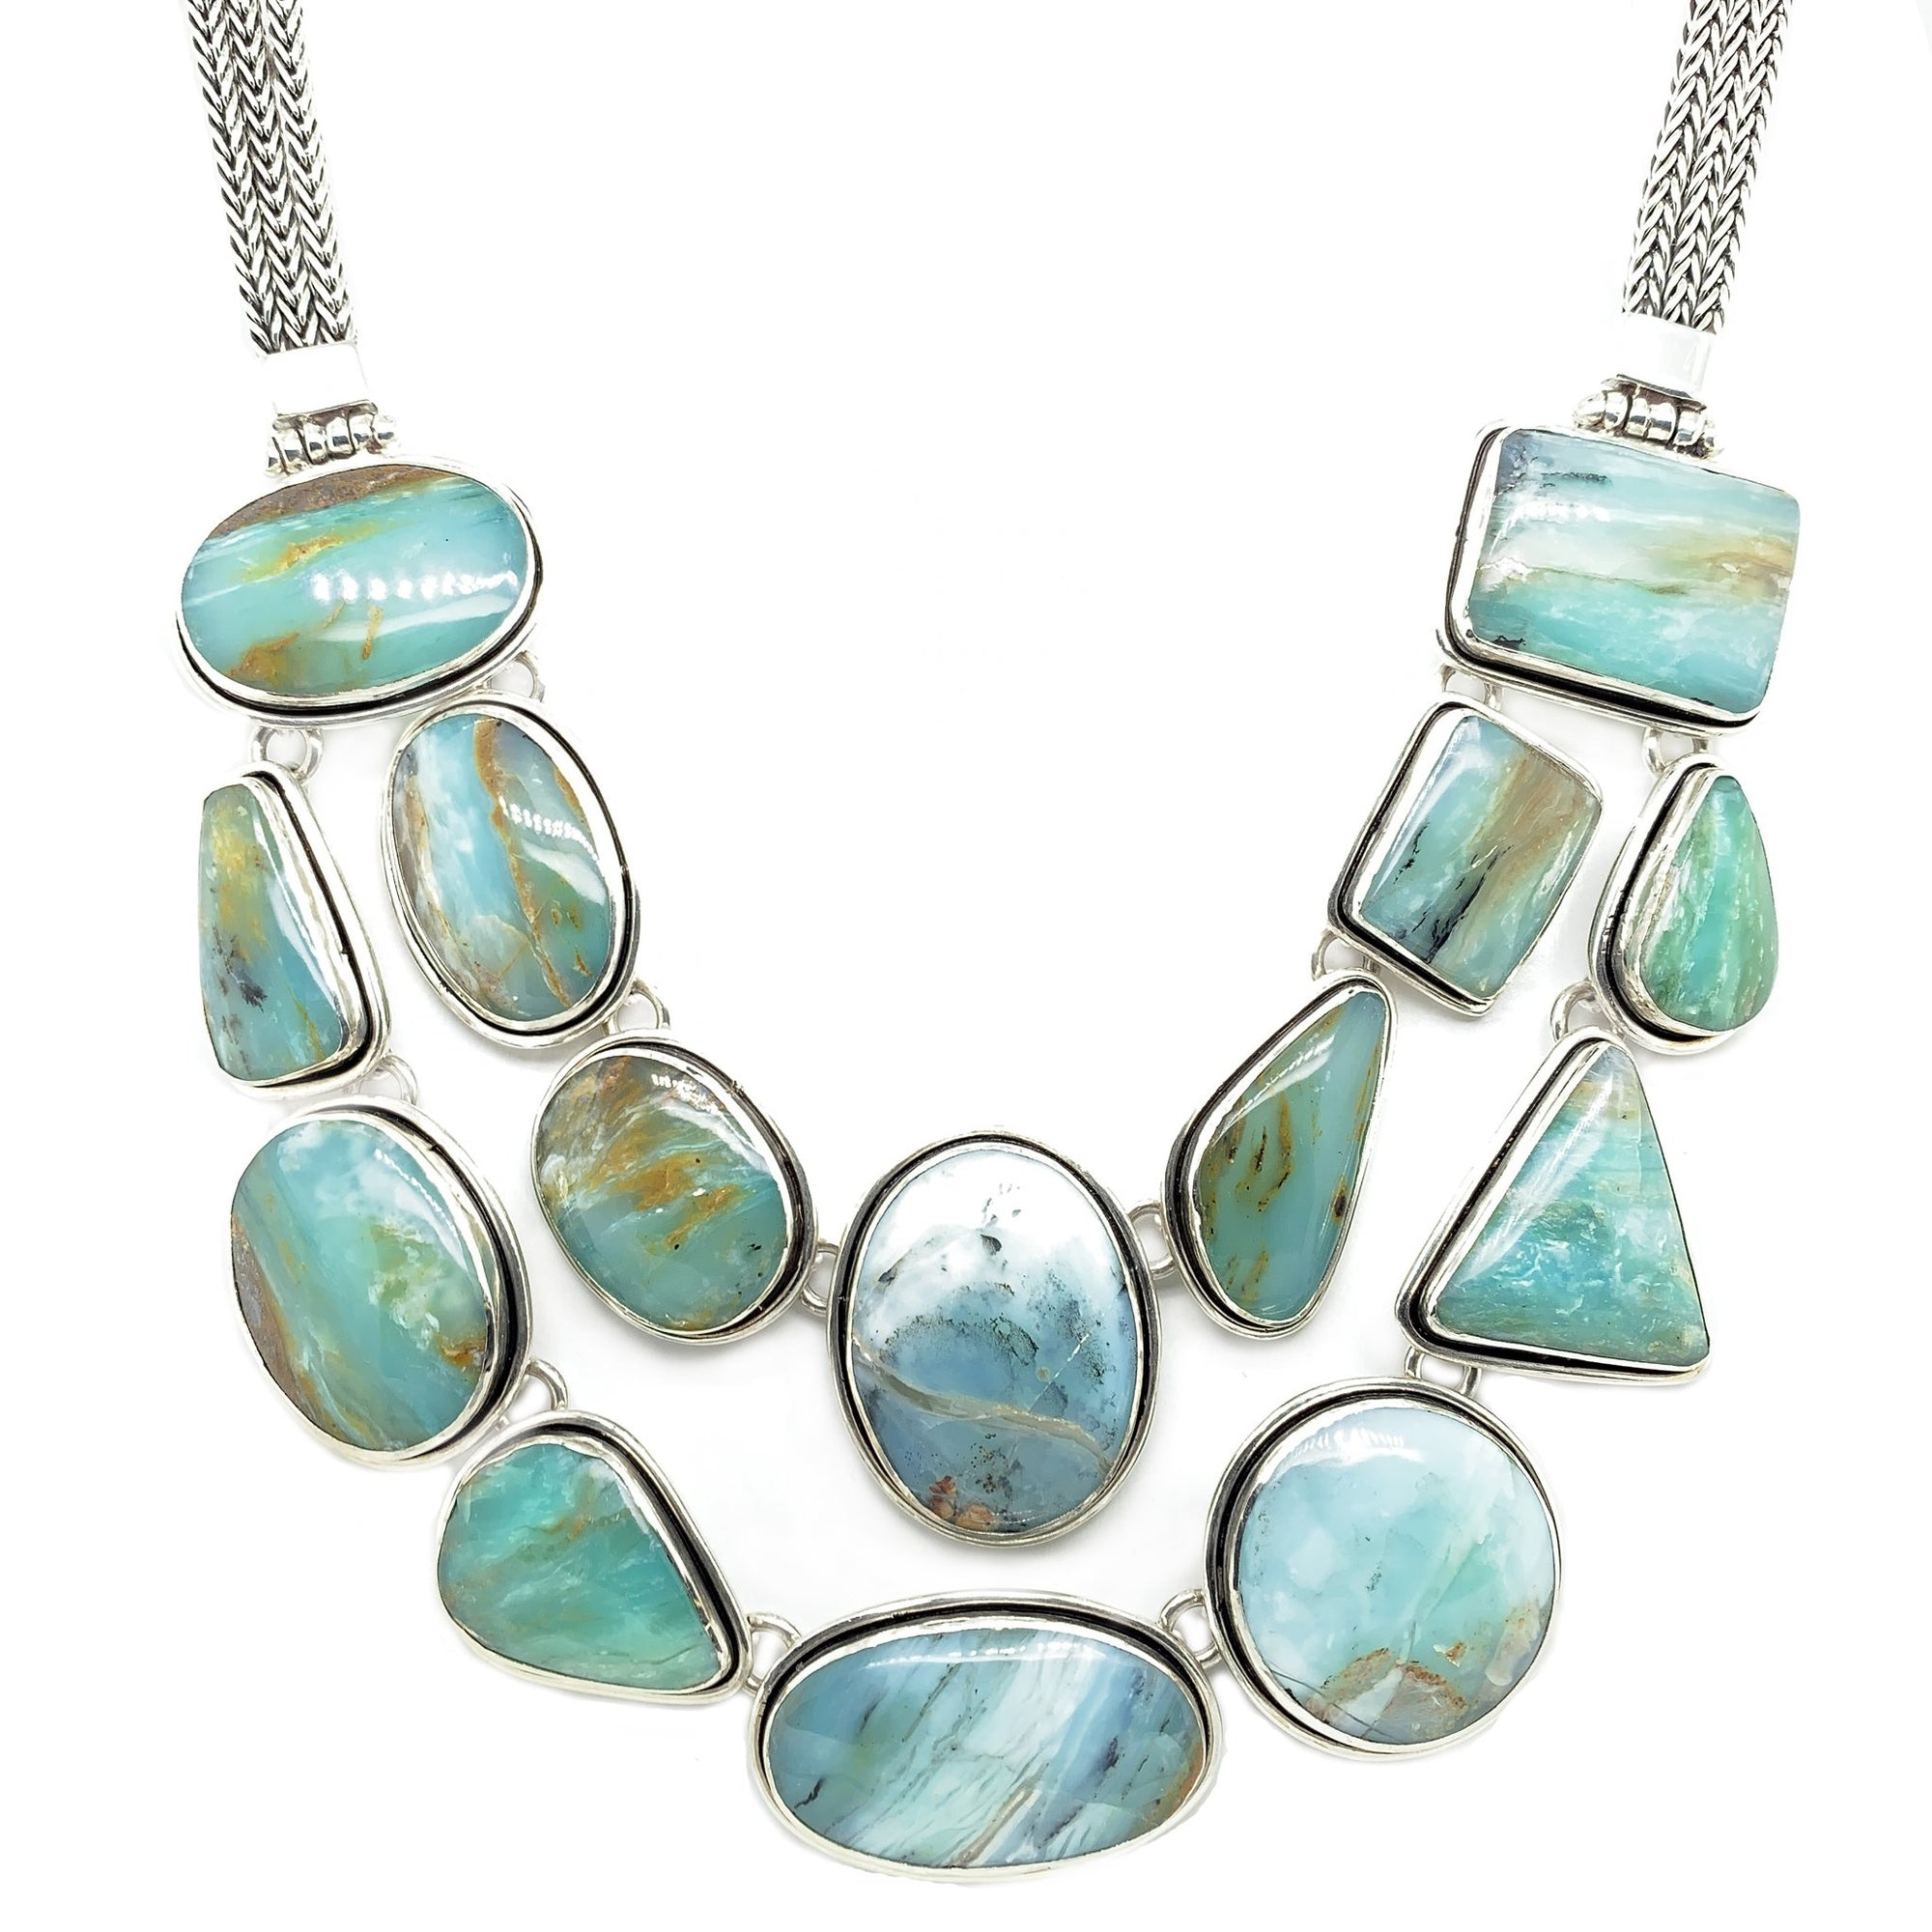 Peruvian Blue Opal Jewelry - Qinti - The Peruvian Shop